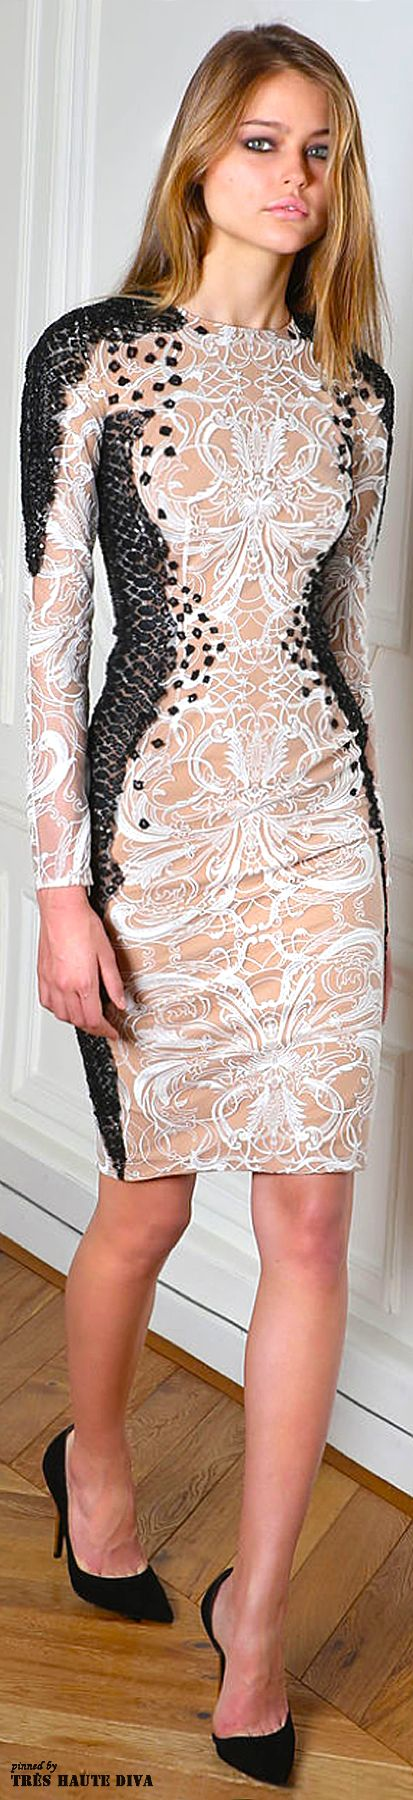 """#Paris Fashion Week #Zuhair #Murad Fall/Winter 2014 RTW (^.^) Thanks, Pinterest Pinners, for stopping by, viewing, re-pinning, & following my boards. Have a beautiful day! ^..^ and """"Feel free to share on Pinterest ^..^ #catsandme #cats #doghealthcareblog"""